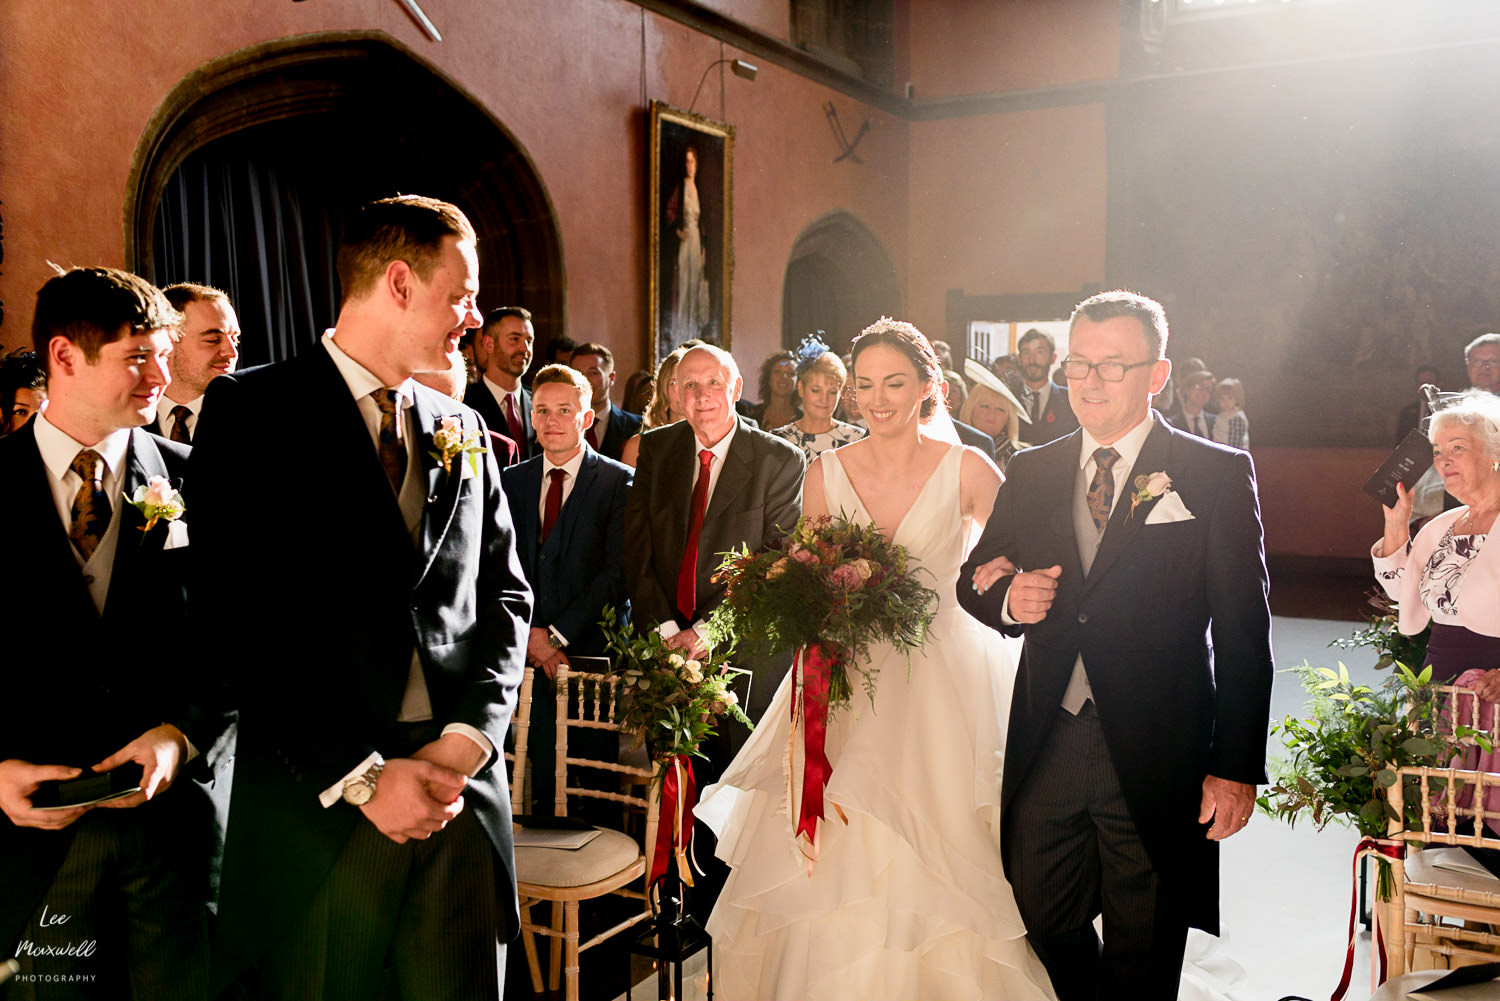 Walking down the aisle at Cowdray Estate